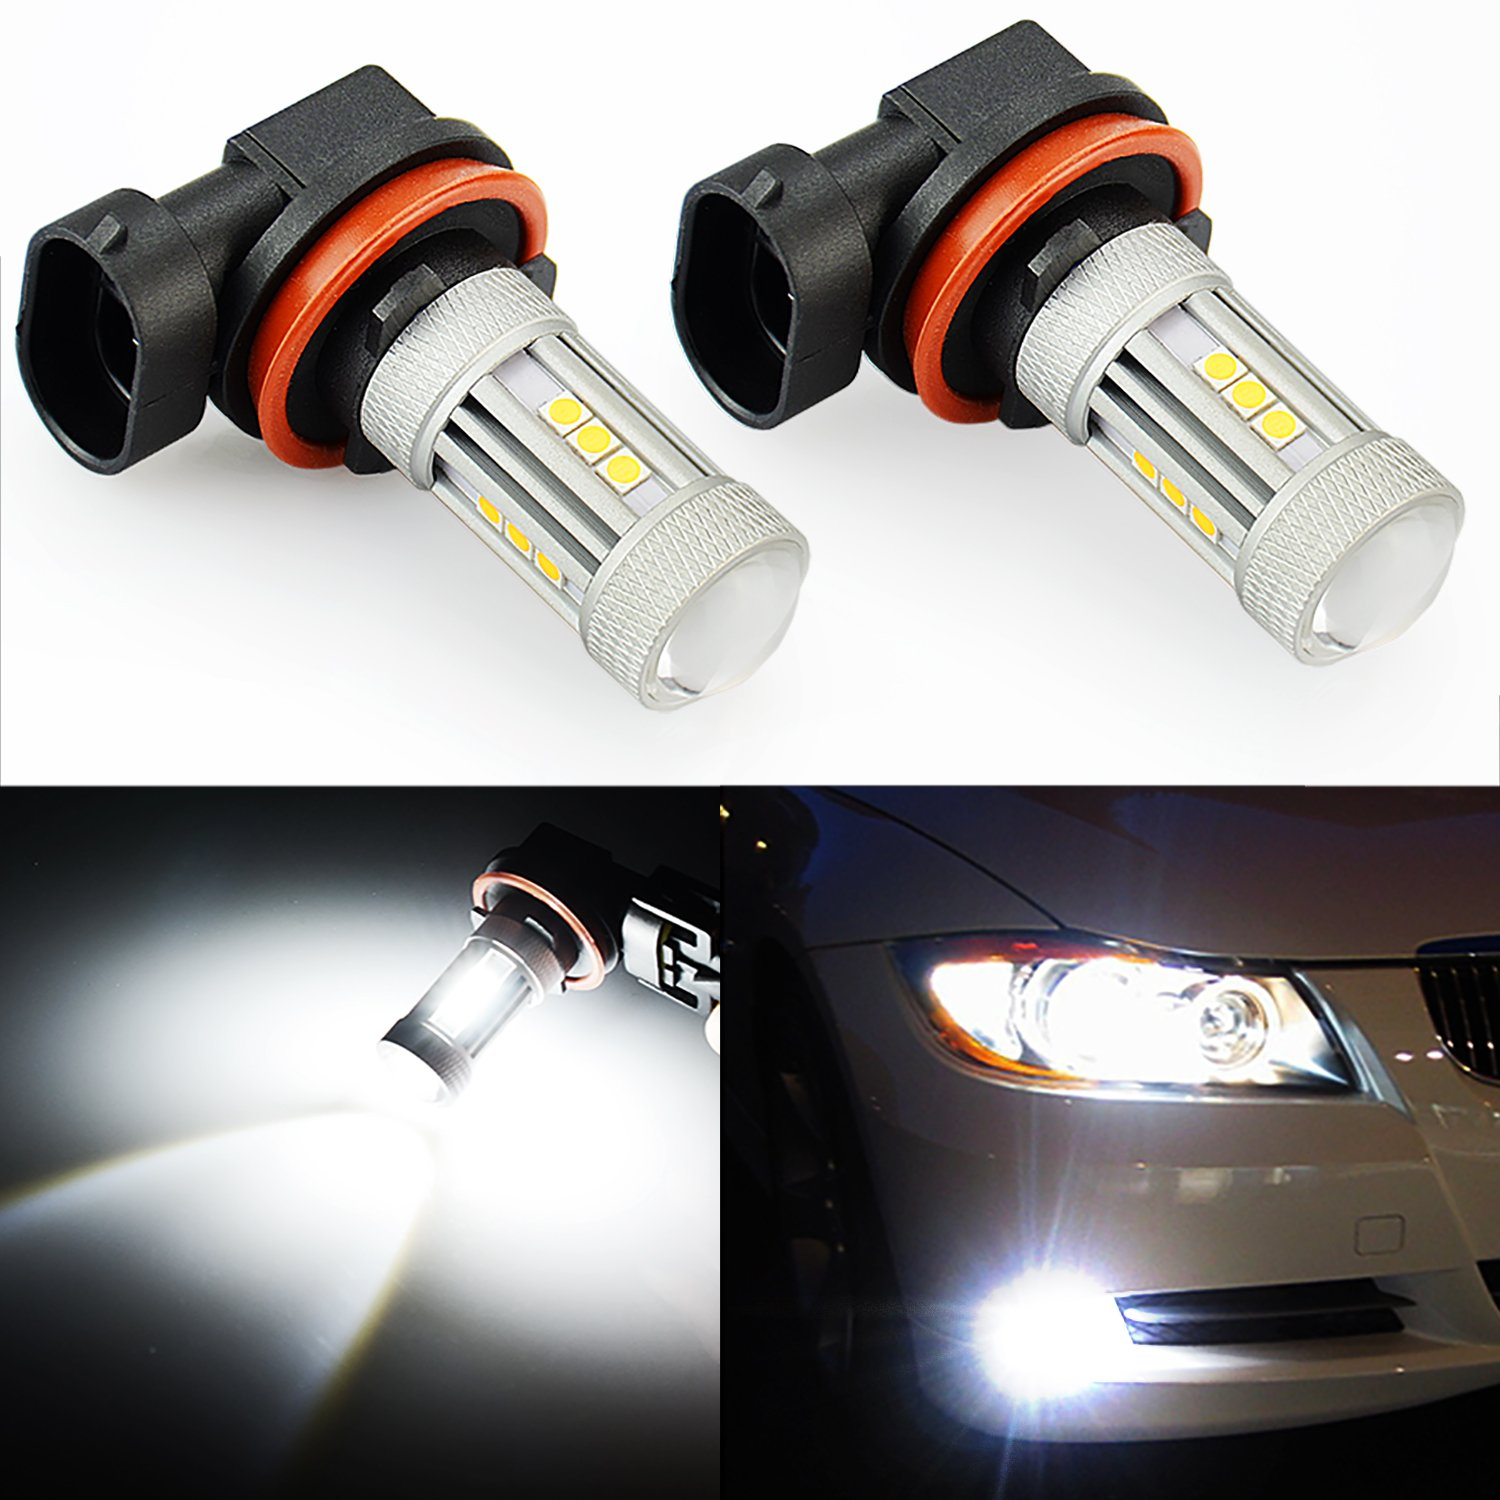 Bmw M5 Fog Light Headlamp Ampamp Foglamp 3s H11 Jdm Astar 2600 Lumens Extremely Bright 3030 Chipsets Led Bulbs For Drl Or